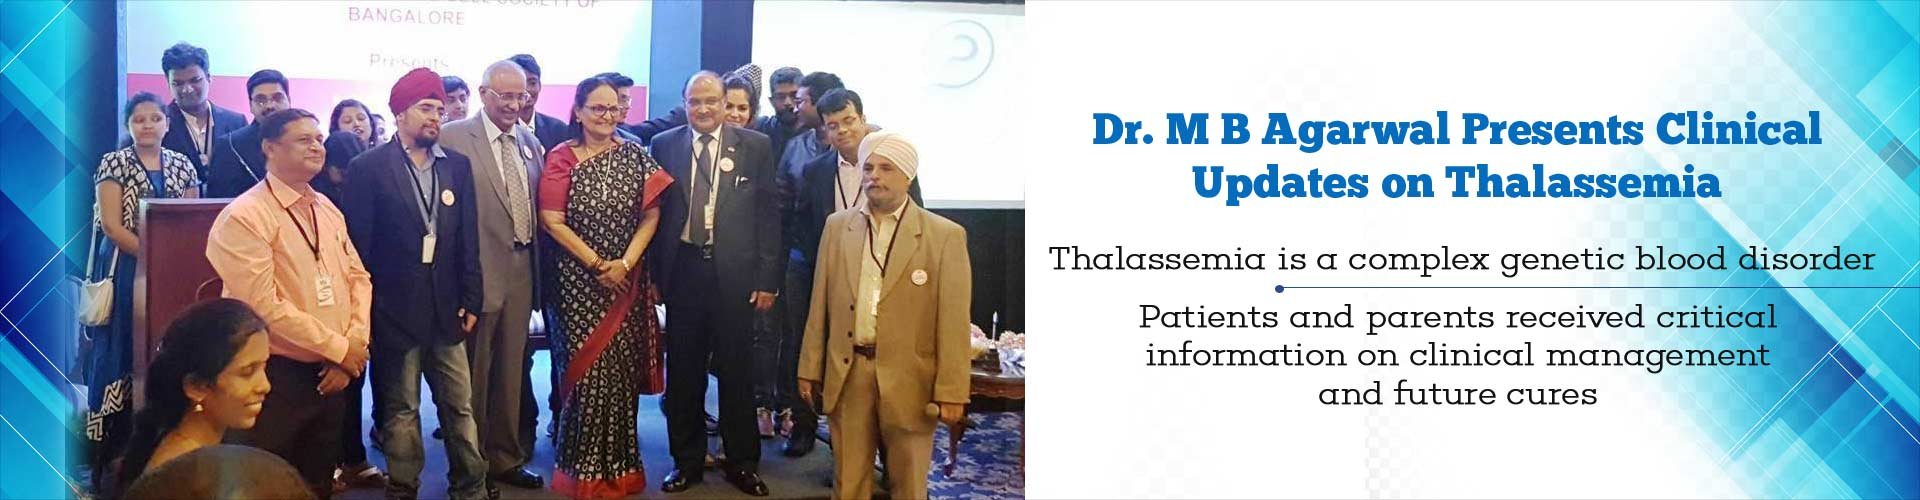 Clinical Update on Current Management of Thalassemia